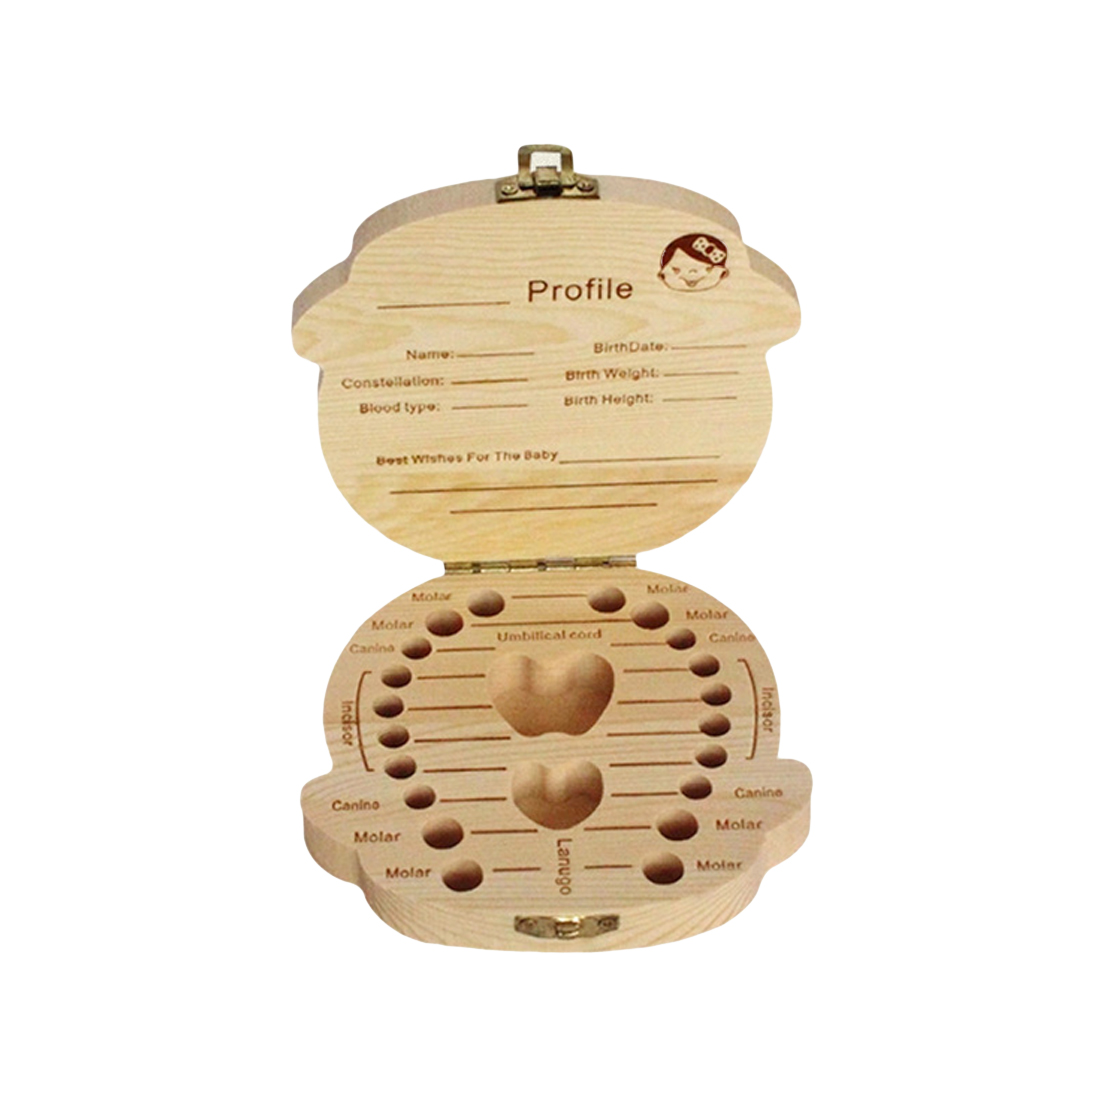 Welcomed English Wooden Baby Tooth Box Organizer Milk Tooth Storage Box For Boy Girl Save Teeth Umbilical Cord